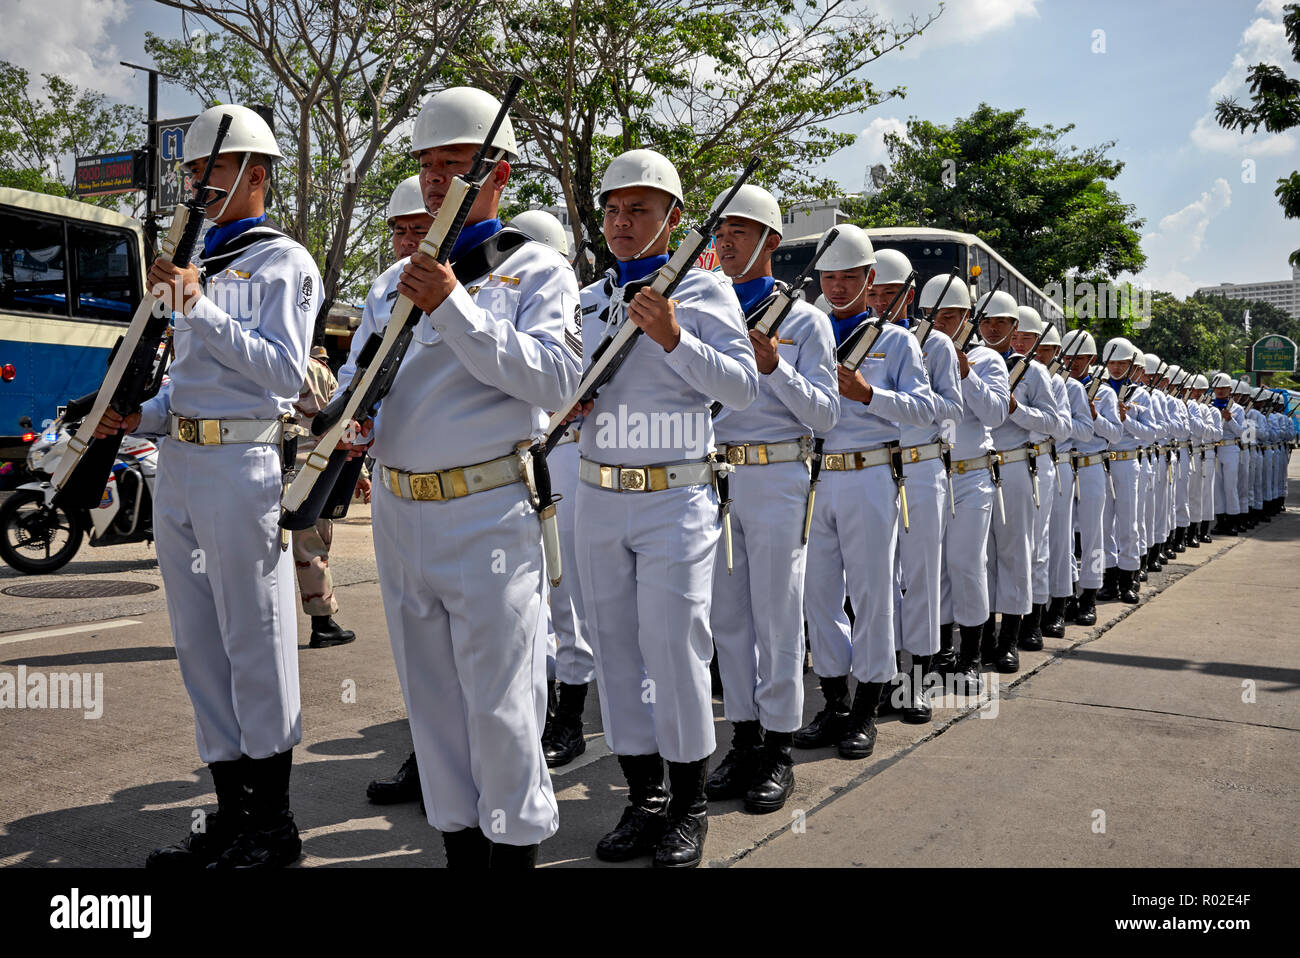 Thailand navy personnel on parade in full military whites. - Stock Image